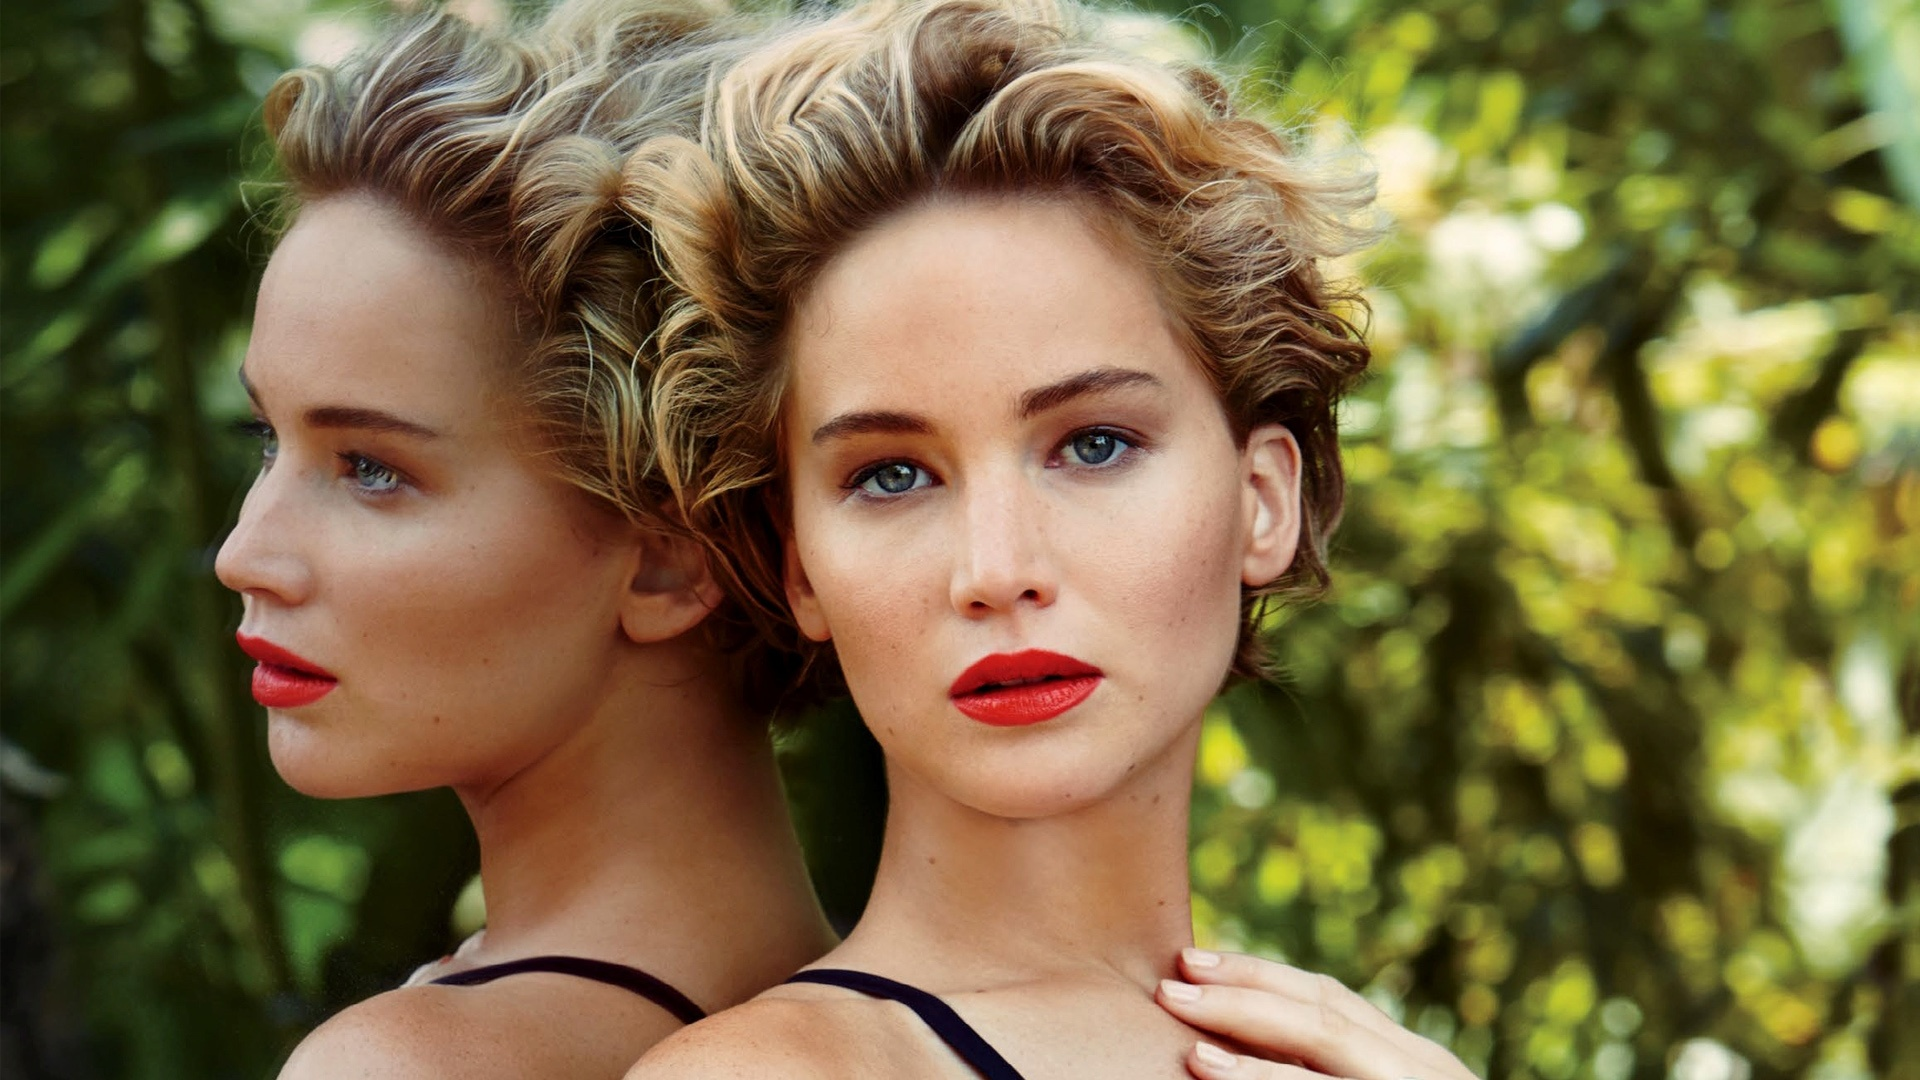 jennifer lawrence images hd A9